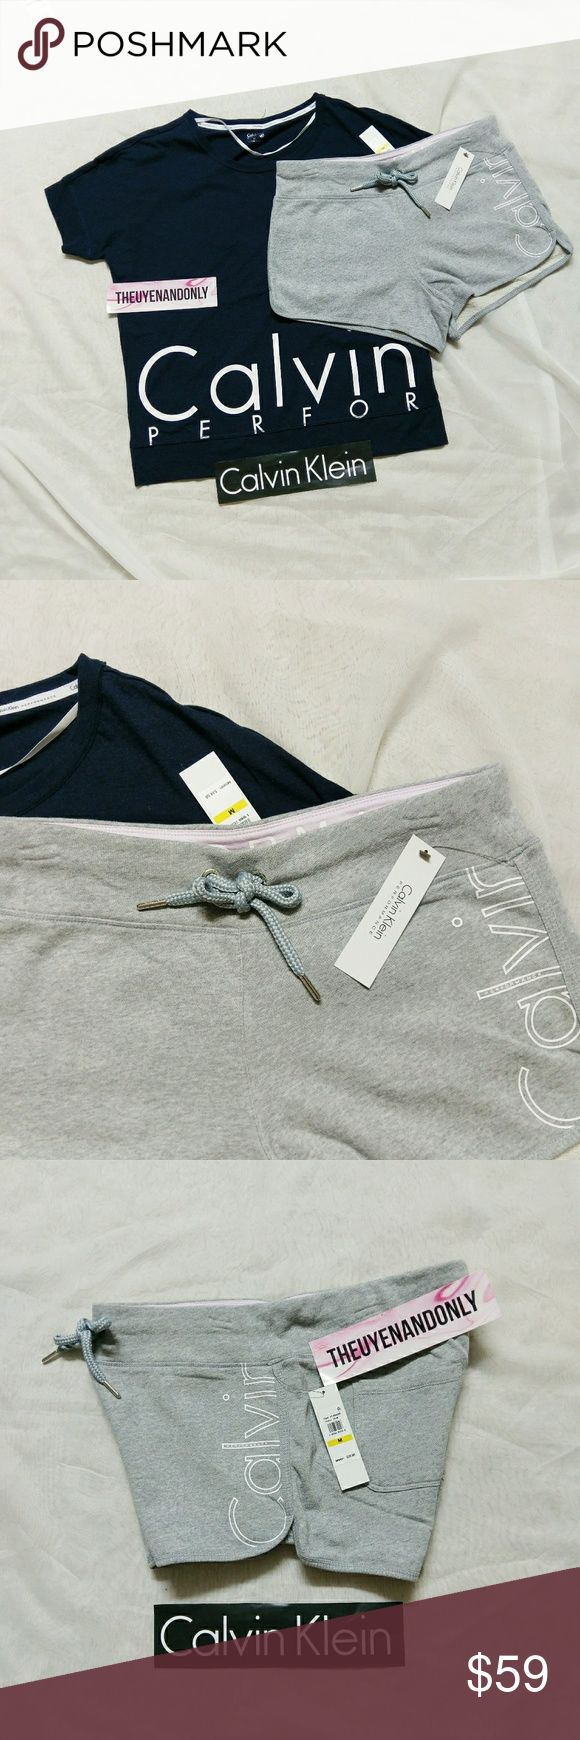 NWT Authentic CK Calvin Klein Performance Set PRICE IS FIRM  NEW WITH TAGS - 100% AUTHENTIC  You will receice 1 shorts and 1 t-shirt both in size MEDIUM  I am currently only have 1 set available  FREE SHIPPING is available, please contact Calvin Klein Tops Tees - Short Sleeve